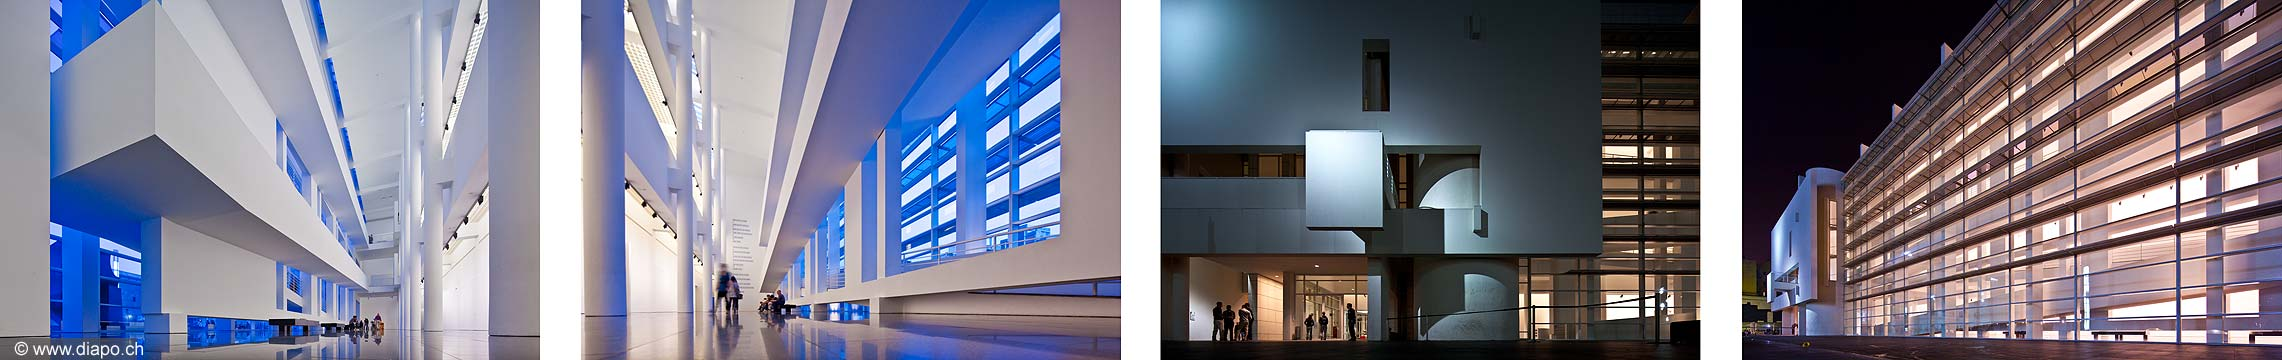 12802 - Photo architecture: MACBA, Musée d Art Contemporain de Barcelone - Espagne - Architecte Richard Meier